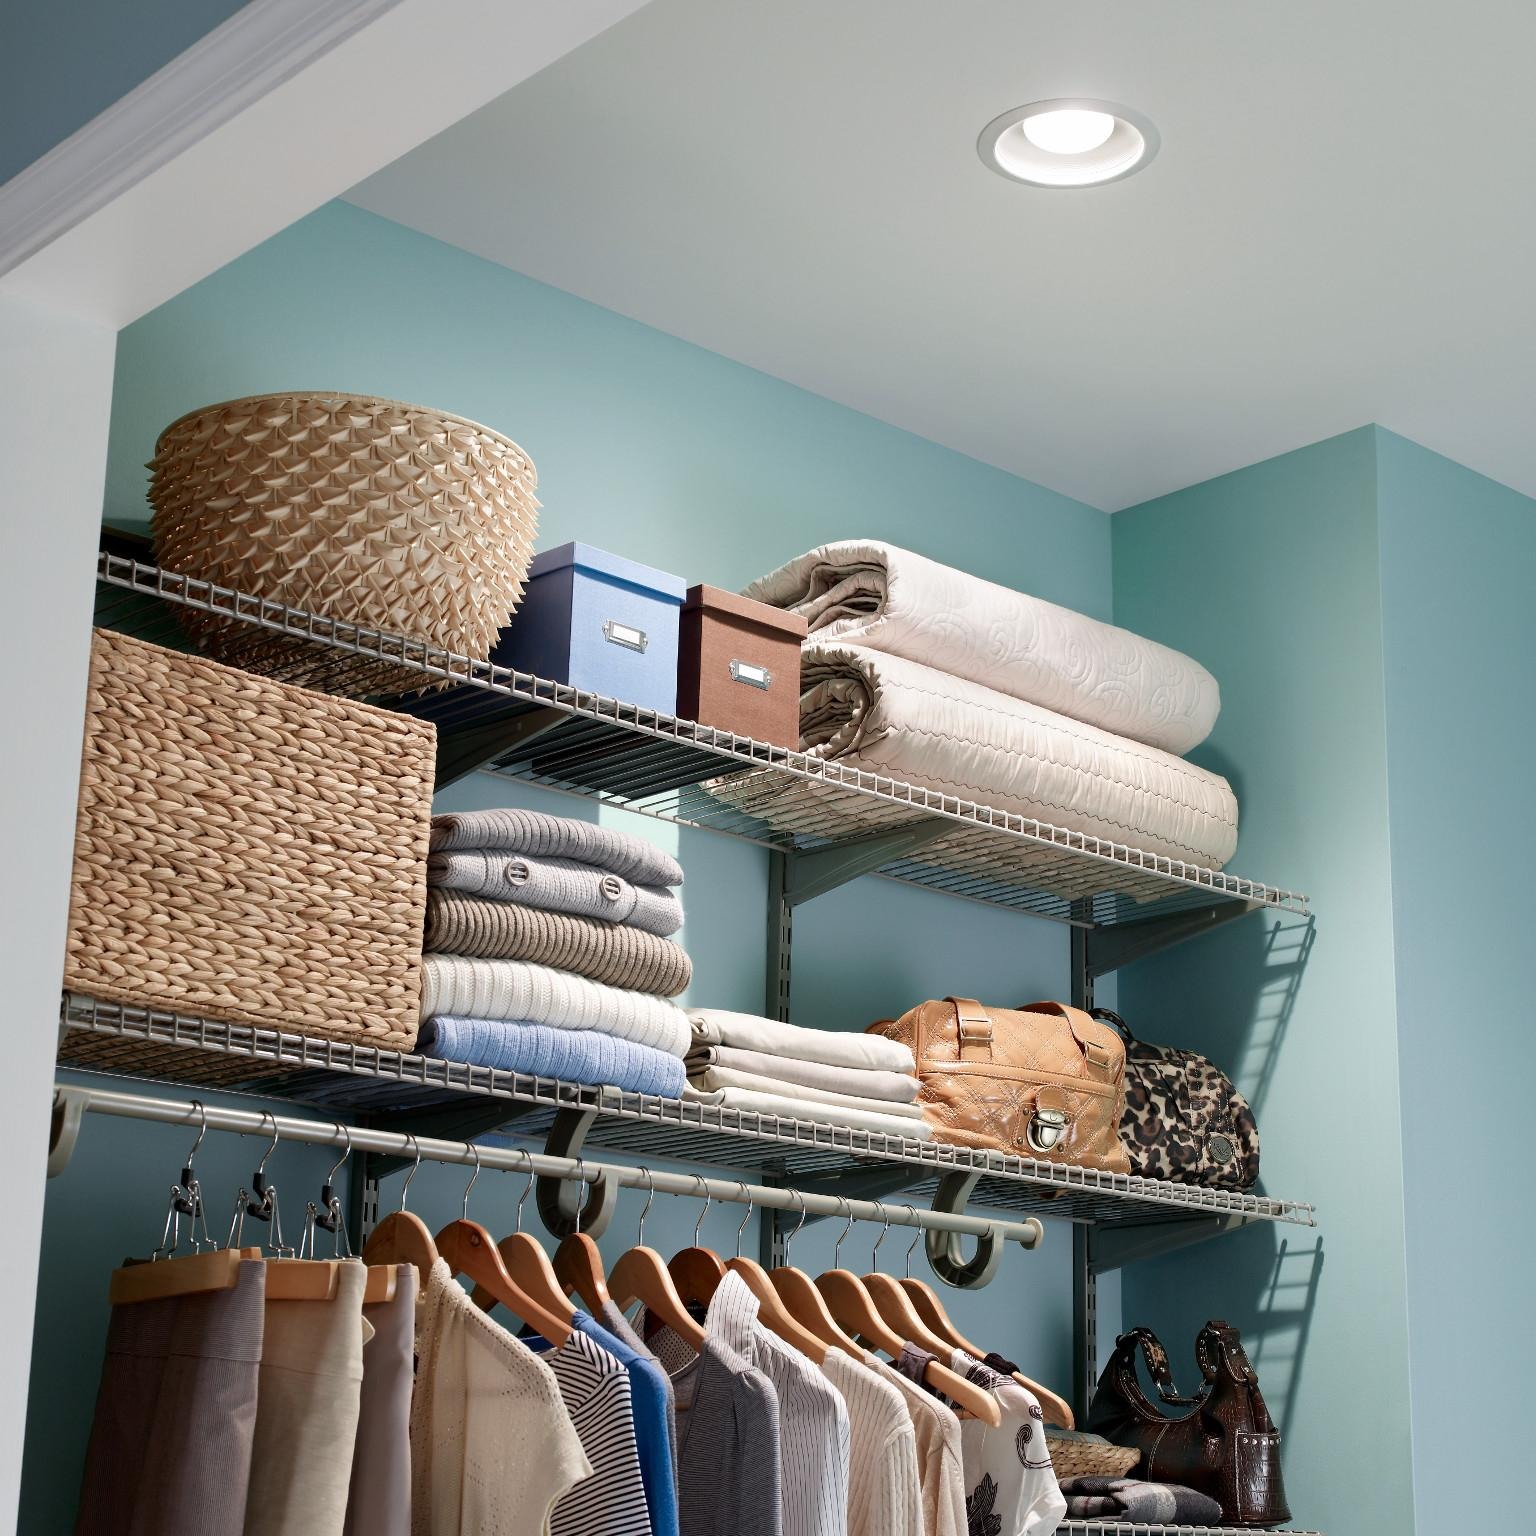 Broan 744 Recessed Bulb Fan And Light 70 Cfm 75 Watt Built In Lights N Wiring Diagram Lifestyle Image Blue Closet